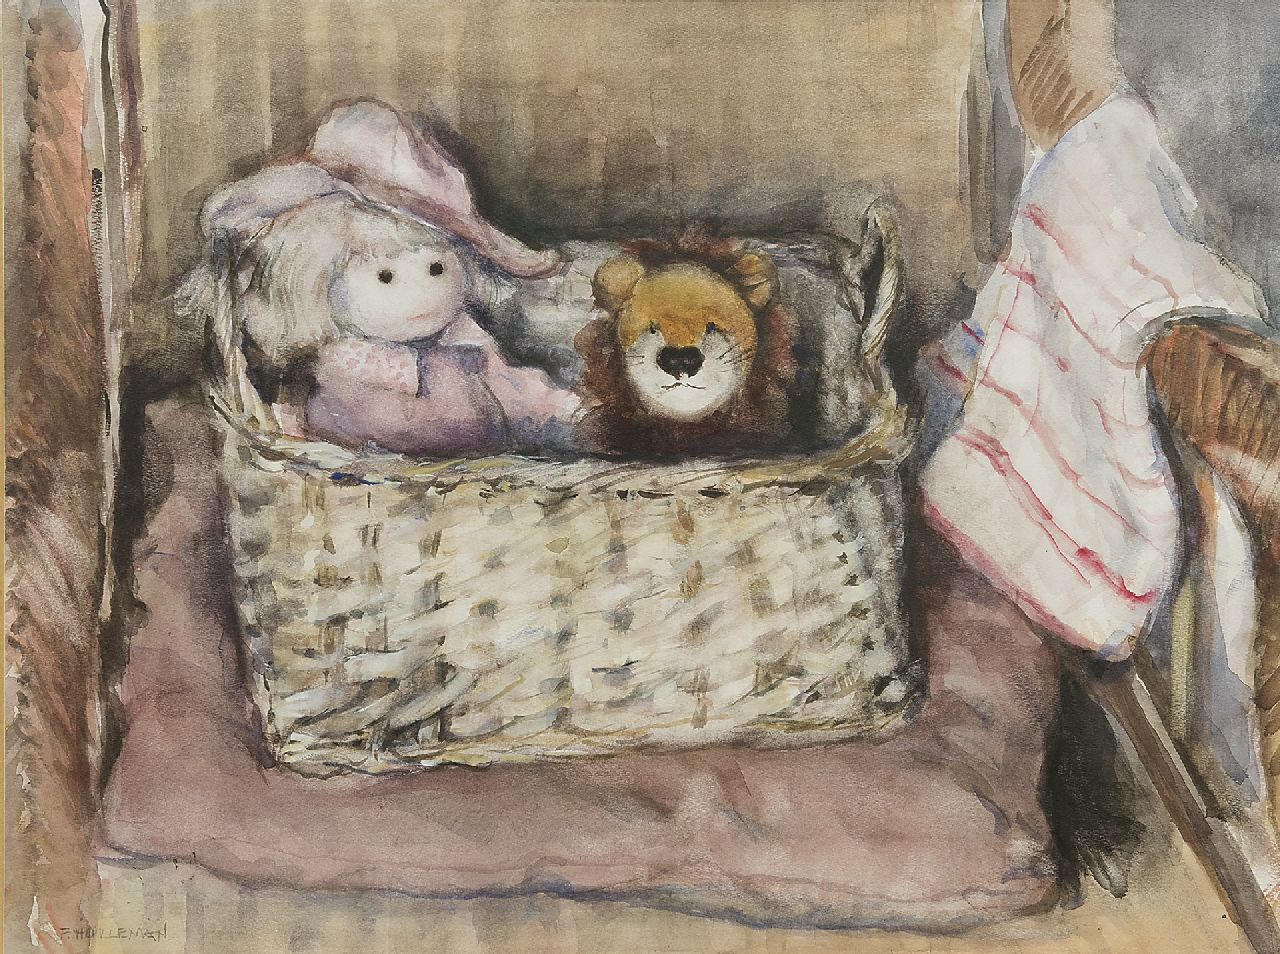 Frida Holleman | The doll basket, watercolour on paper, 35.5 x 47.0 cm, signed l.l.